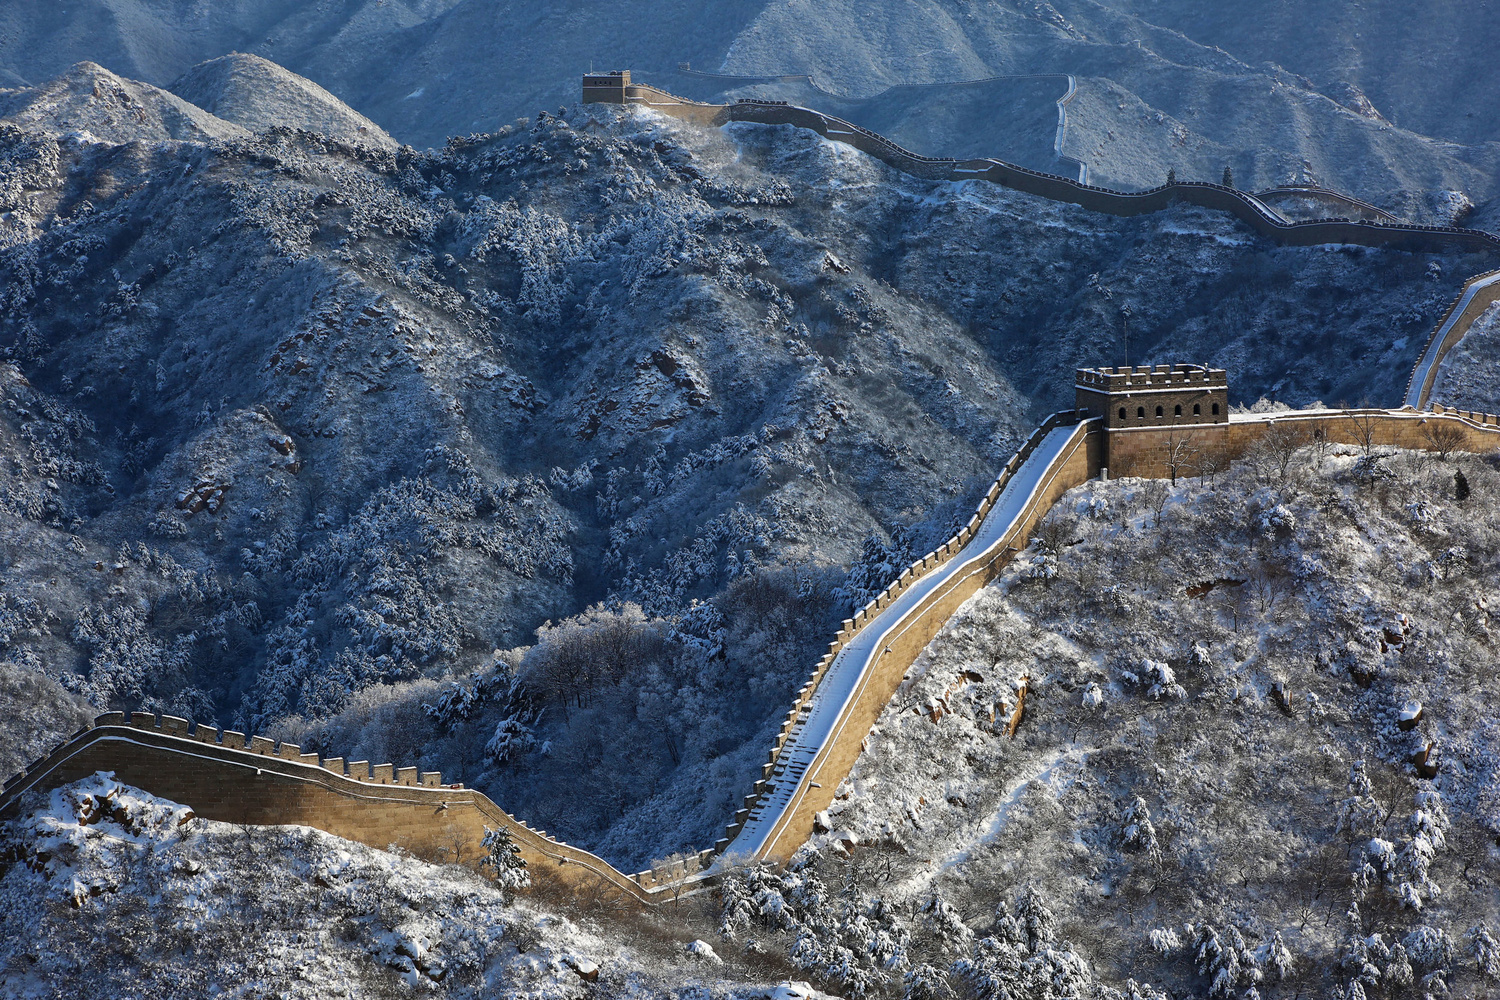 The great wall by Antoine Buchet